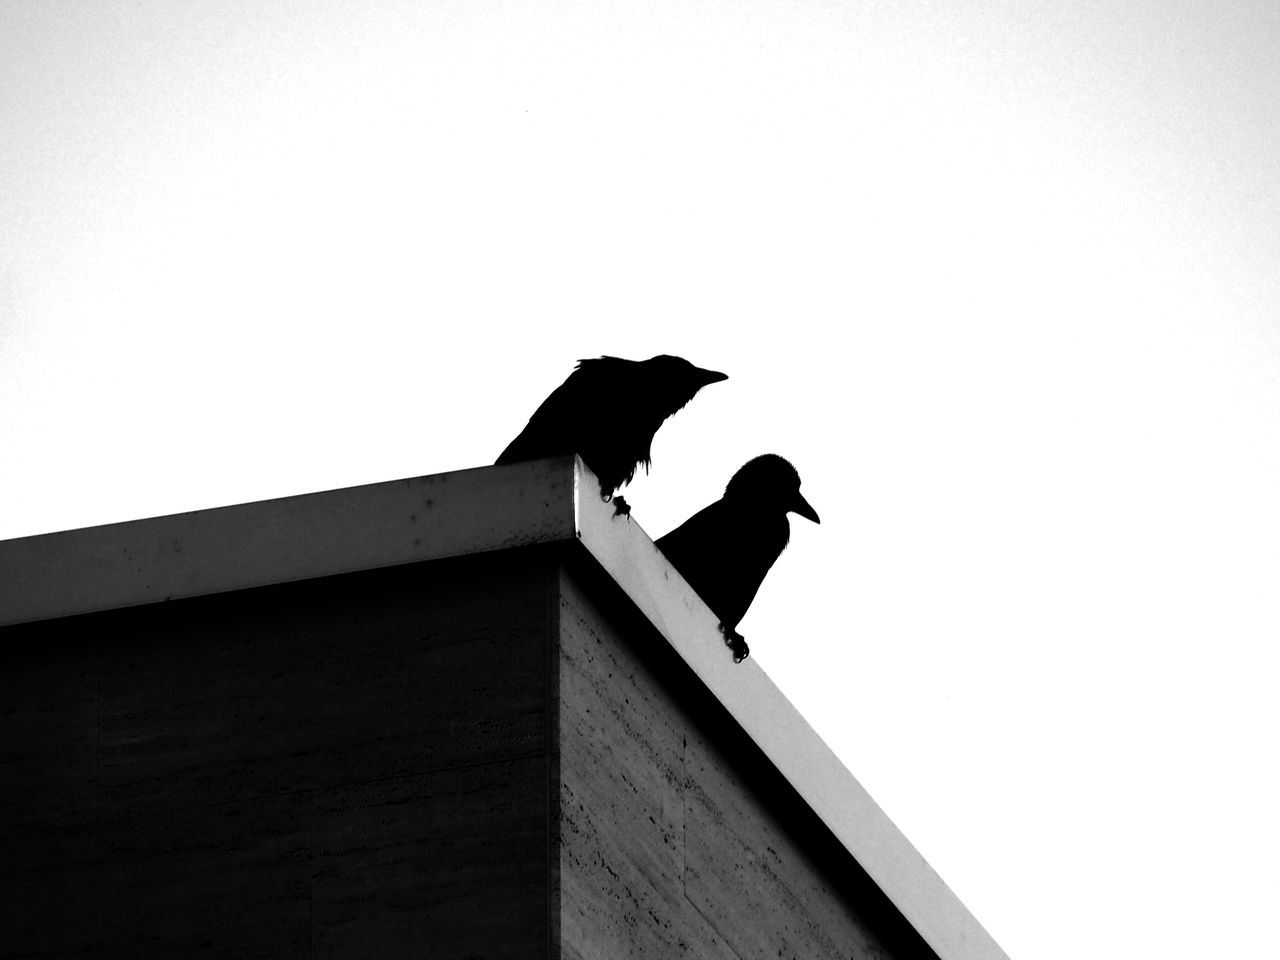 bird, animals in the wild, animal themes, low angle view, perching, animal wildlife, crow, clear sky, copy space, one animal, raven - bird, day, outdoors, no people, built structure, nature, architecture, sky